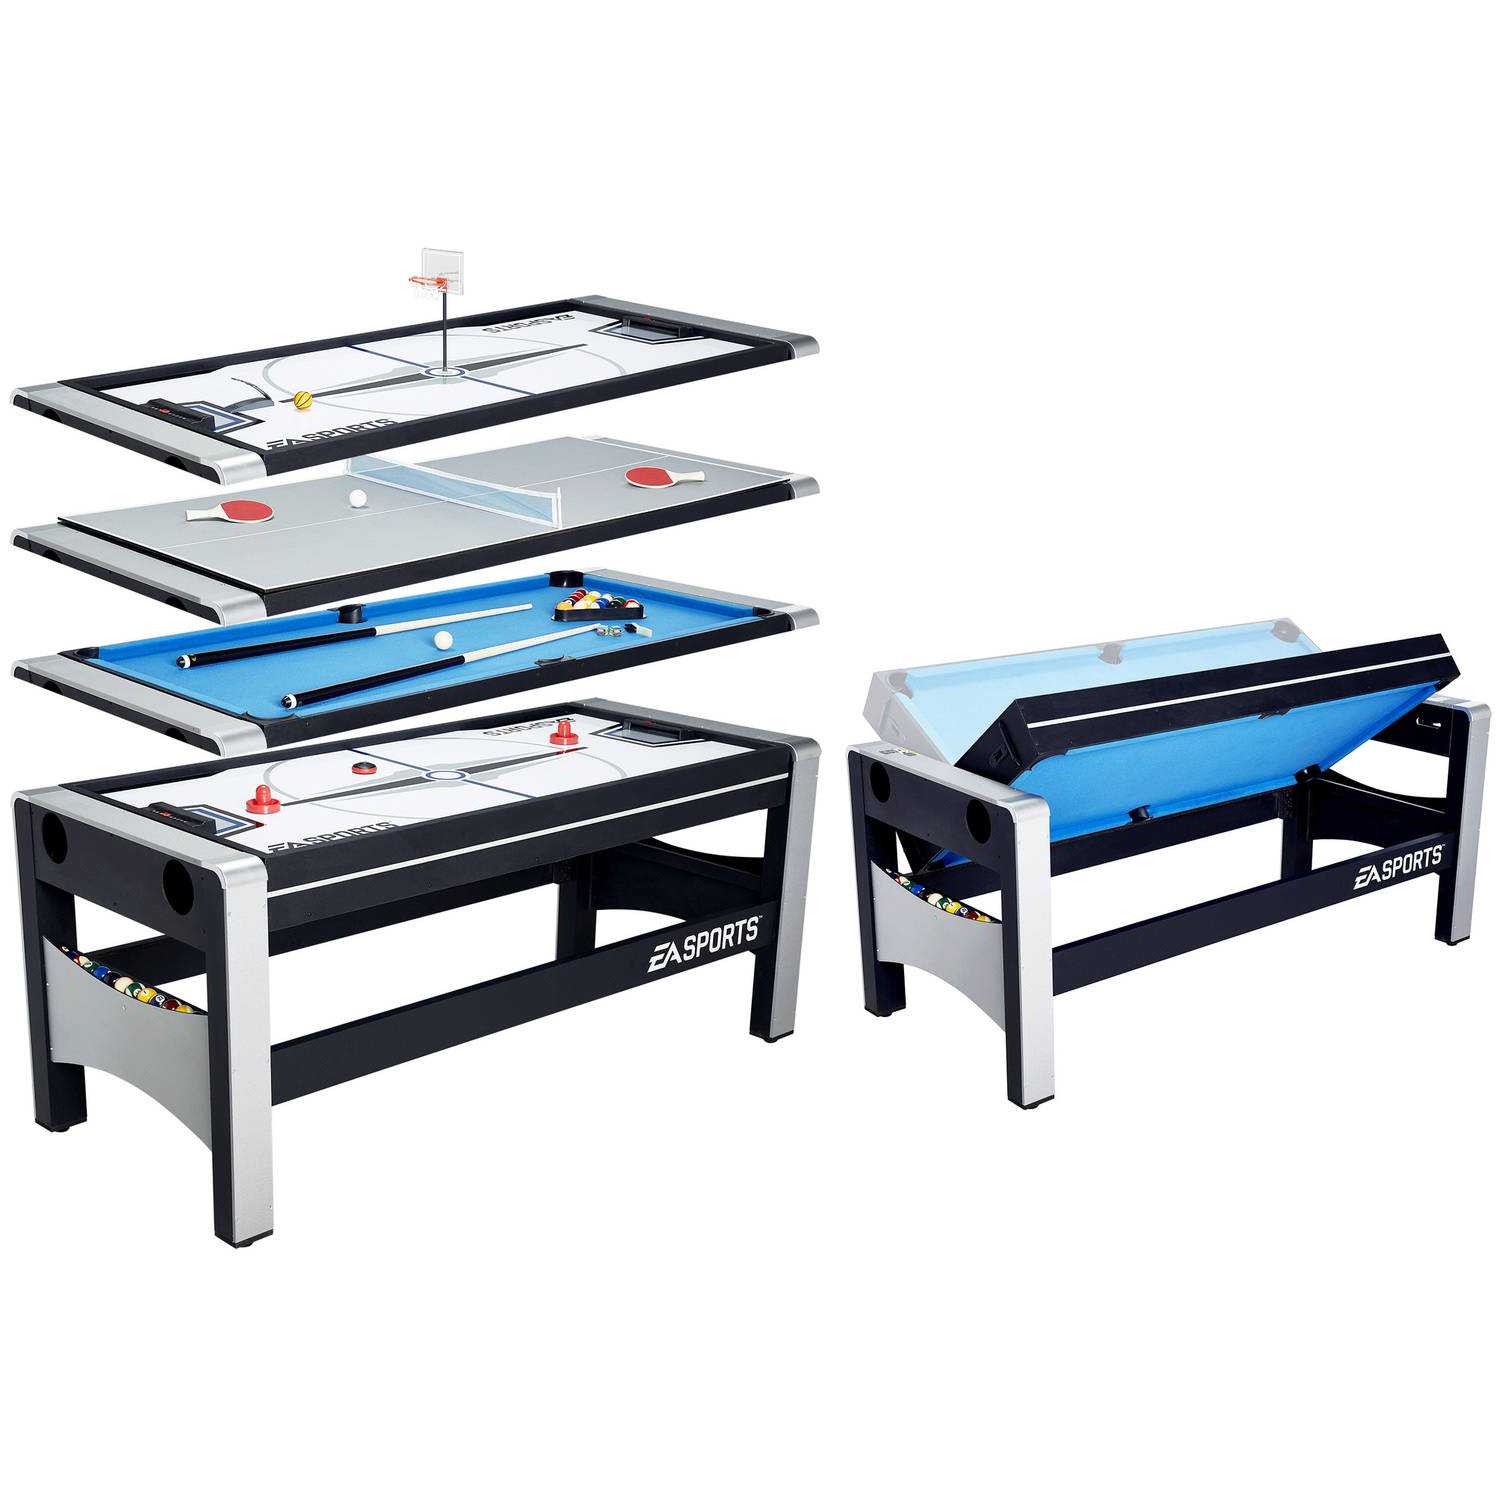 EA Sports 72 Inch 4-in-1 Swivel Combo Game Table, 4 Games with Hockey, Billiards, Table Tennis and Finger Shoot Basketball